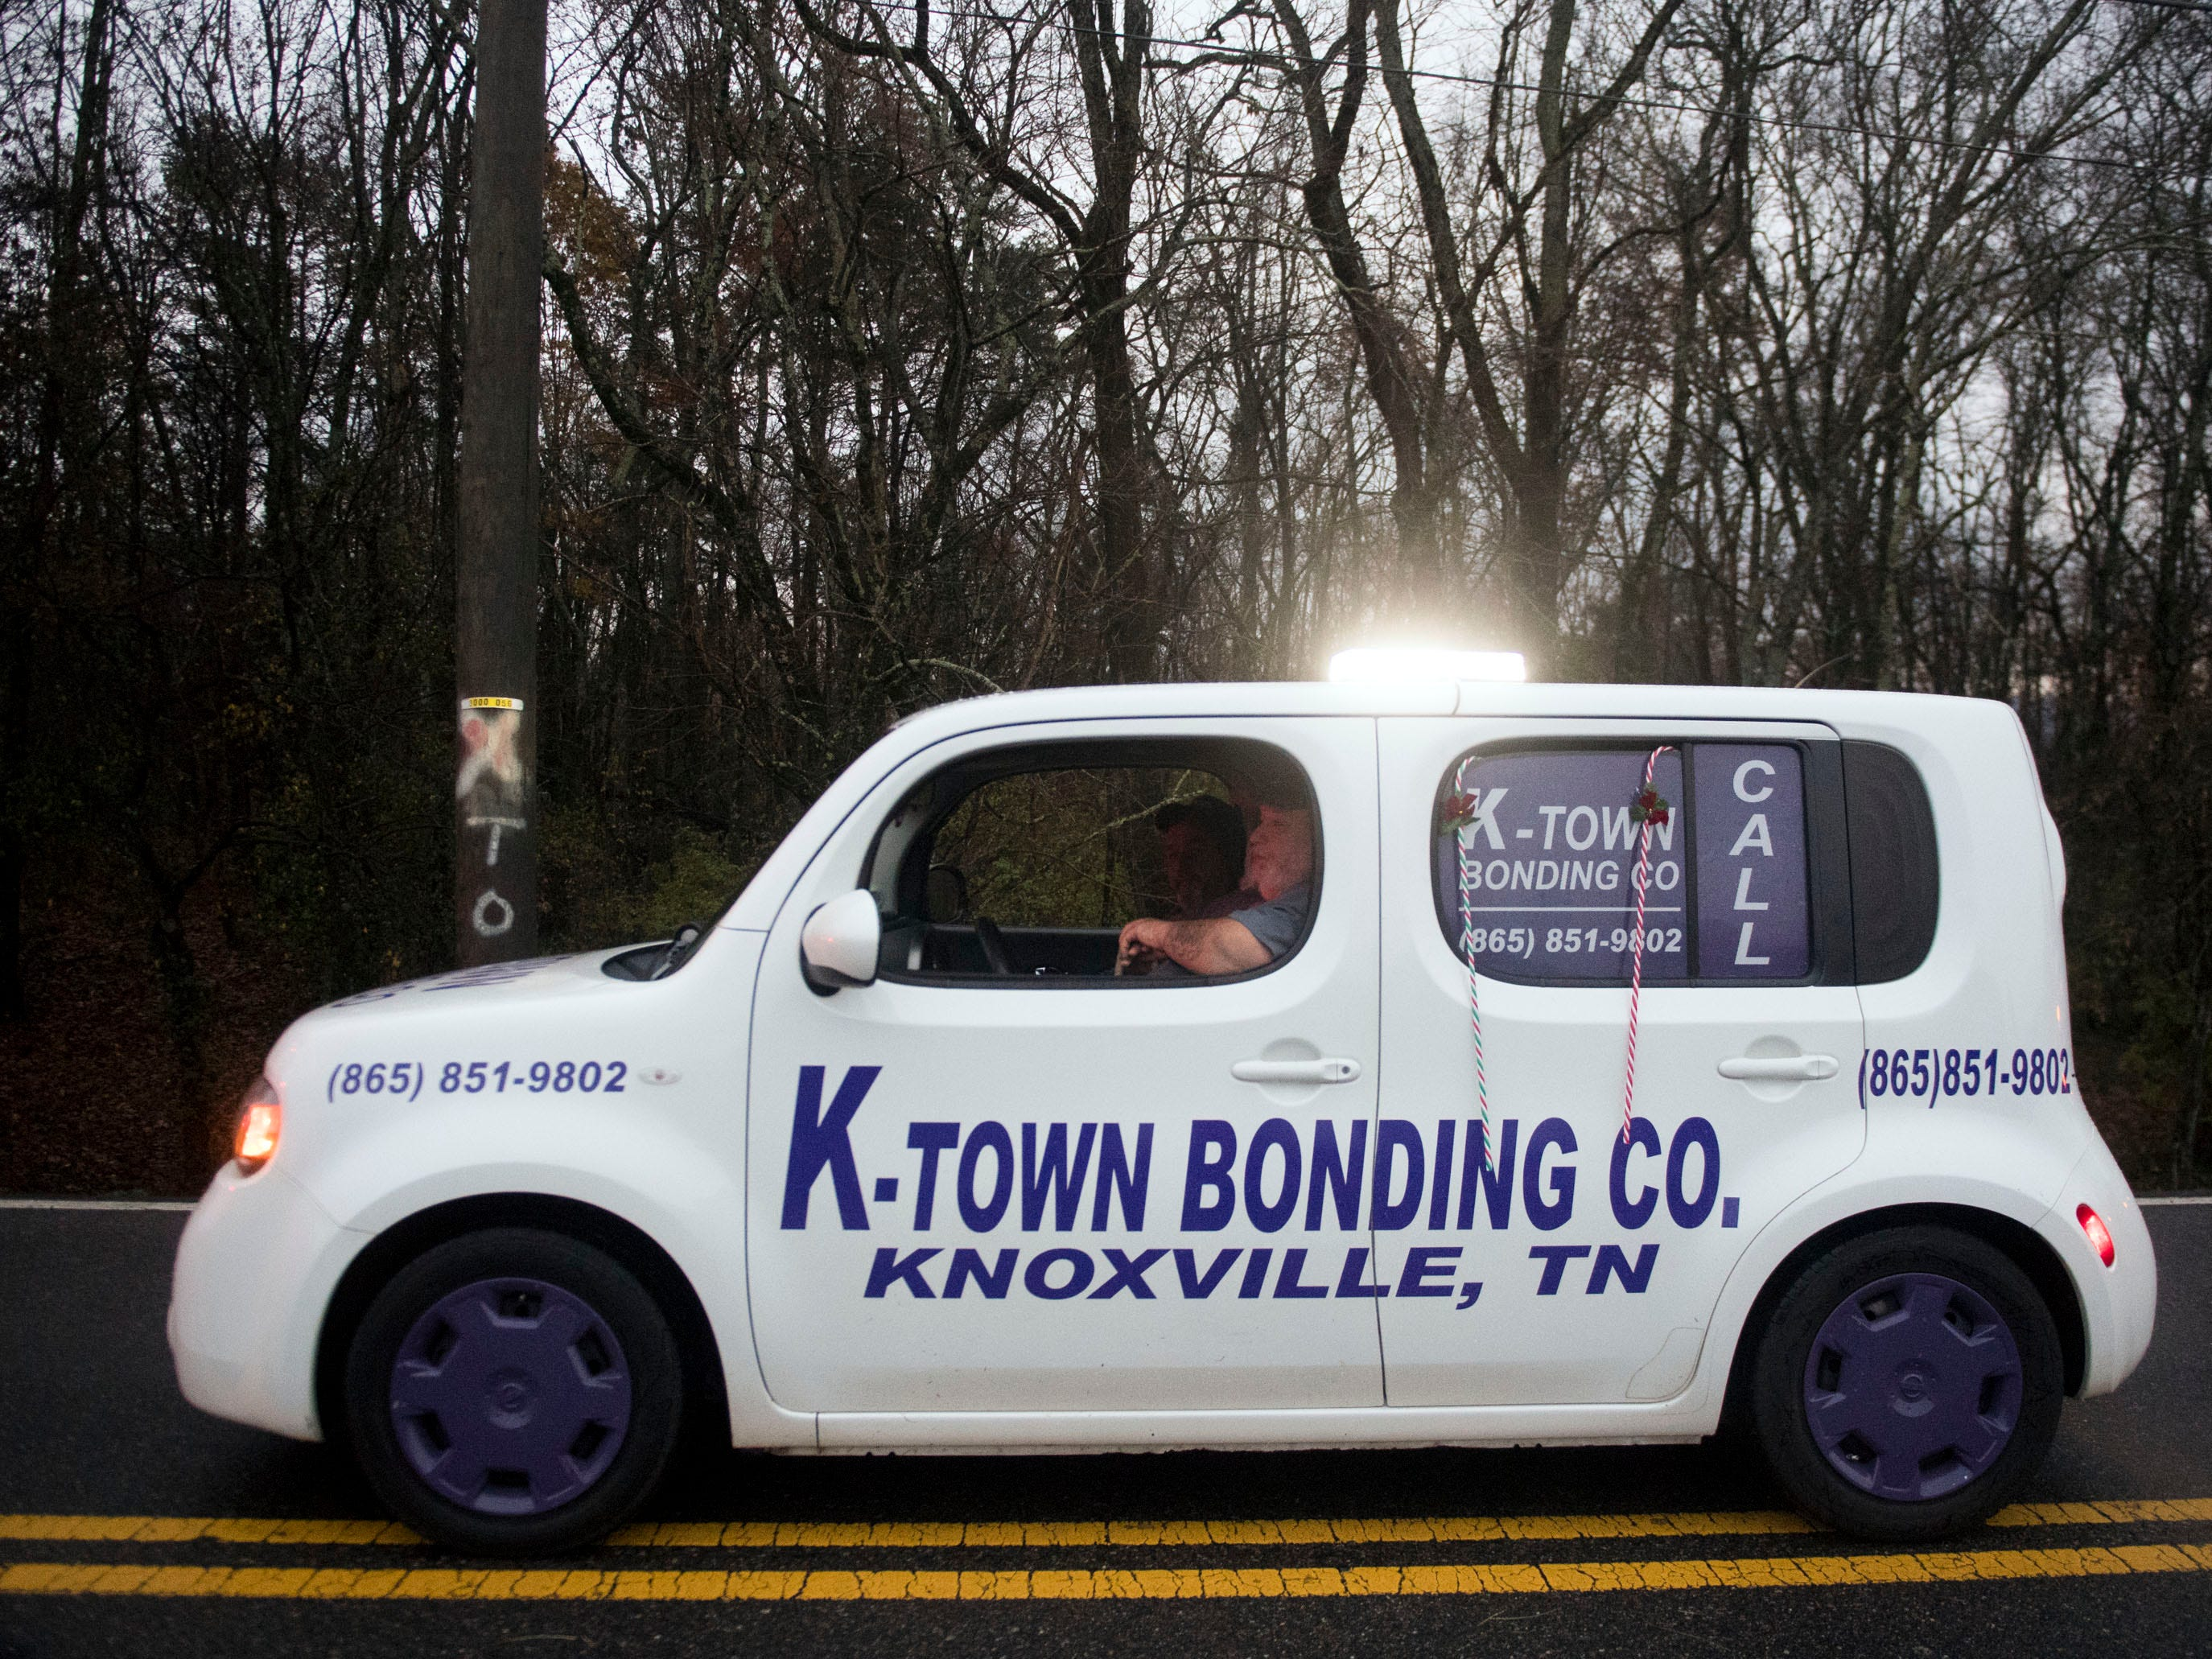 K-Town Bonding Co. in the Powell Lions Club Christmas Parade on Saturday, December 1, 2018.